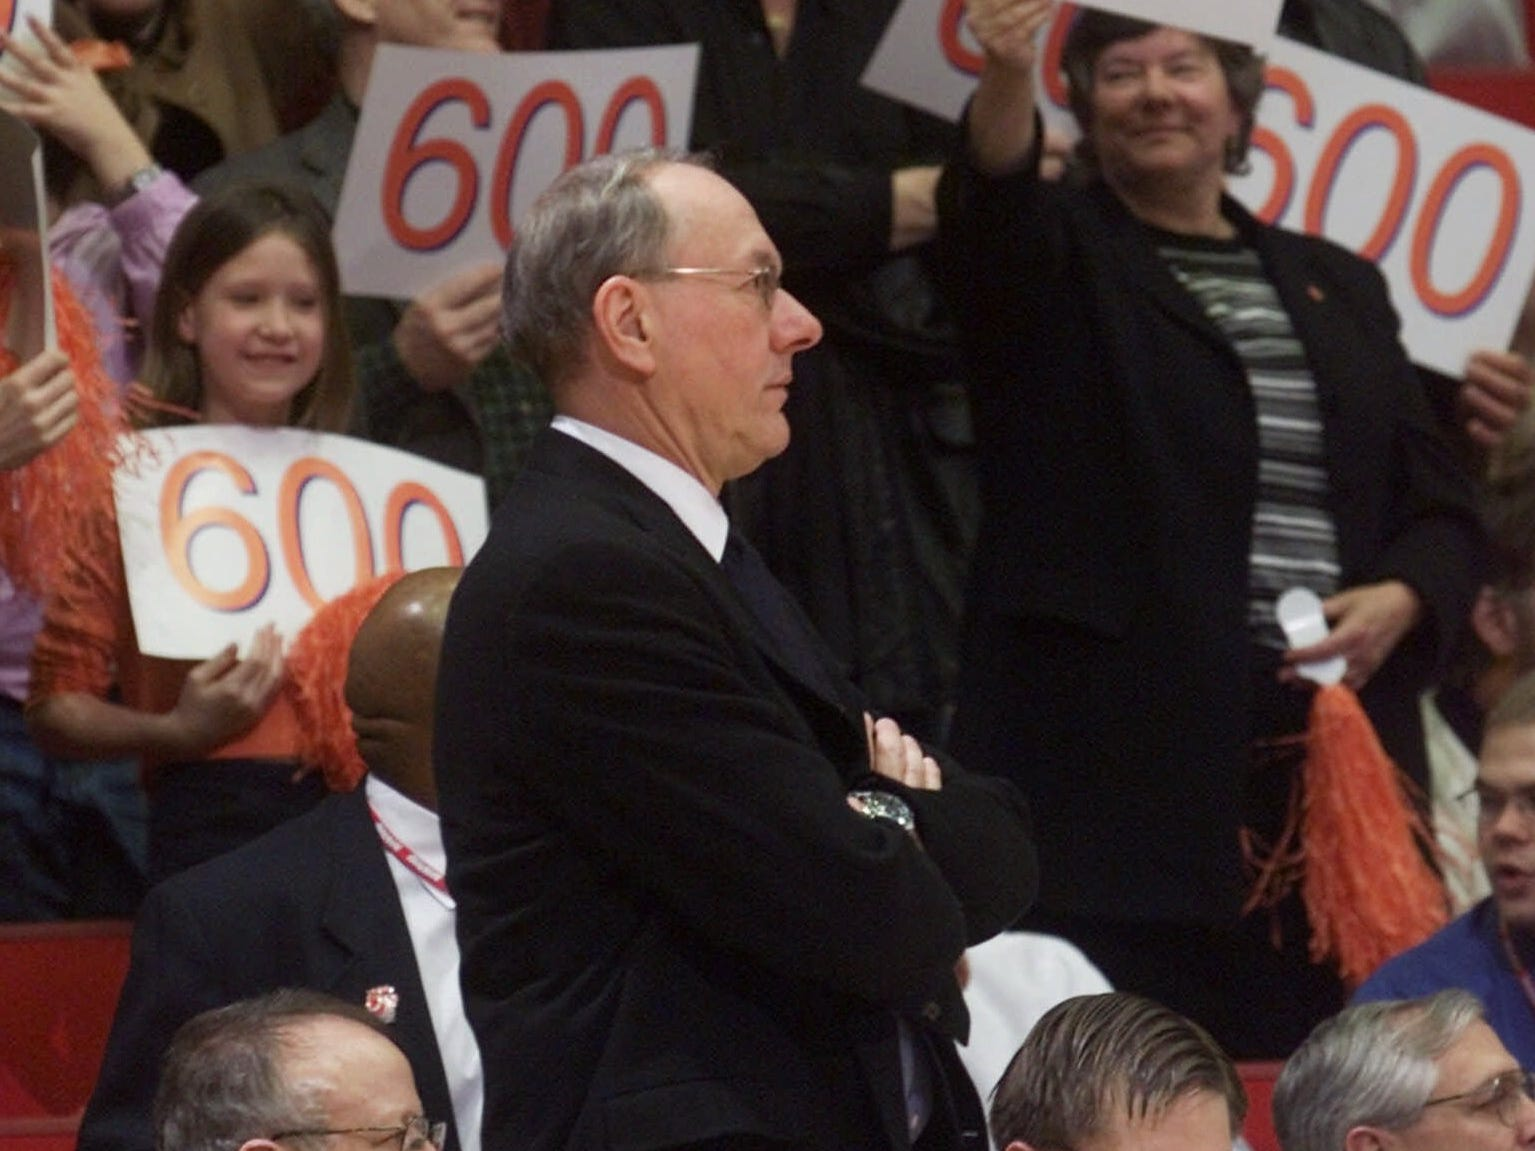 2001: Syracuse coach Jim Boeheim watches his 600th career win - a 79-69 NCAA tournament victory over Hawaii in Dayton, Ohio, Friday, March 16, 2001. (AP Photo/Al Behrman)